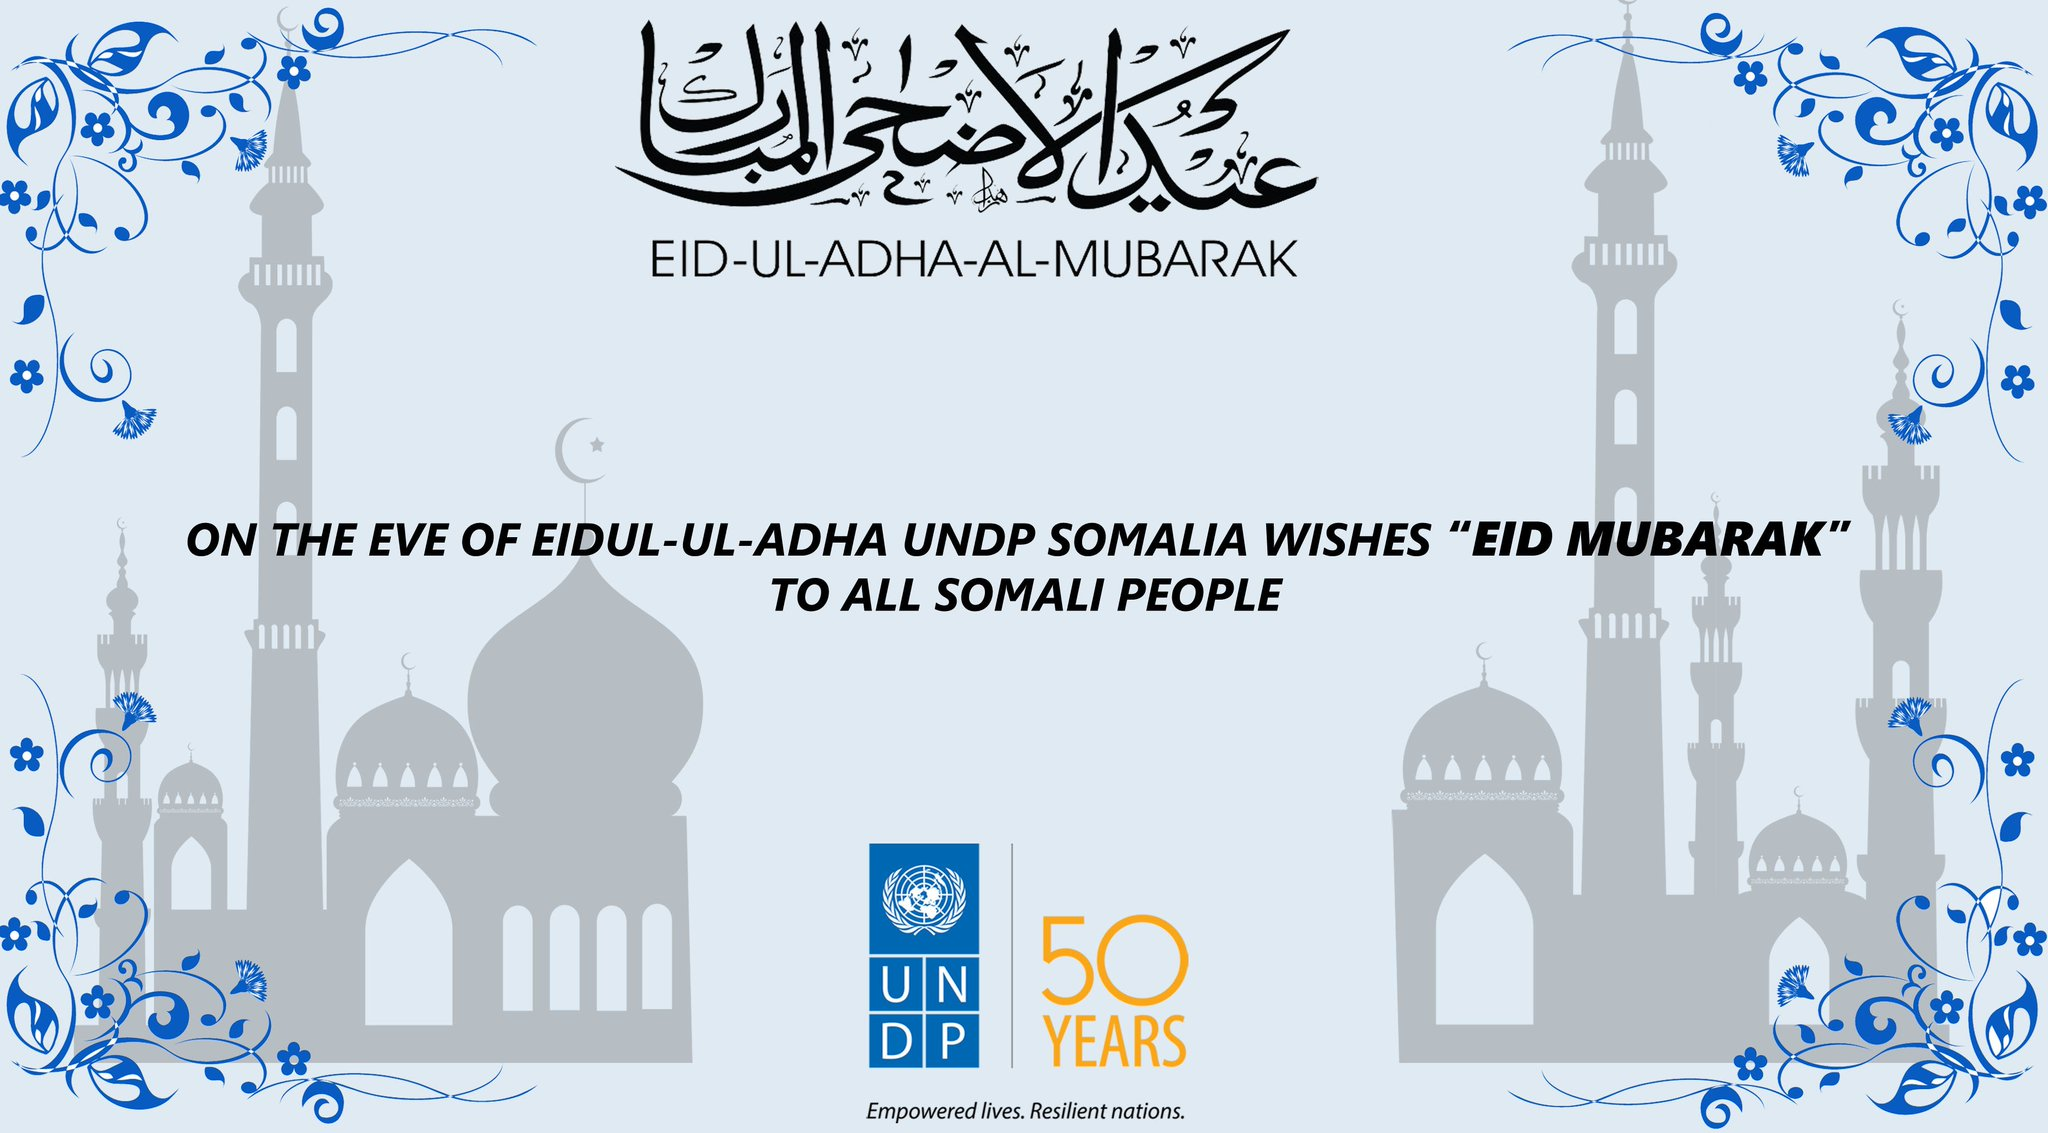 Undp somalia on twitter on the eve of eid ul adha undpsomalia undp somalia on twitter on the eve of eid ul adha undpsomalia extends its greetings to all somali people happy eiduladha to you all m4hsunfo